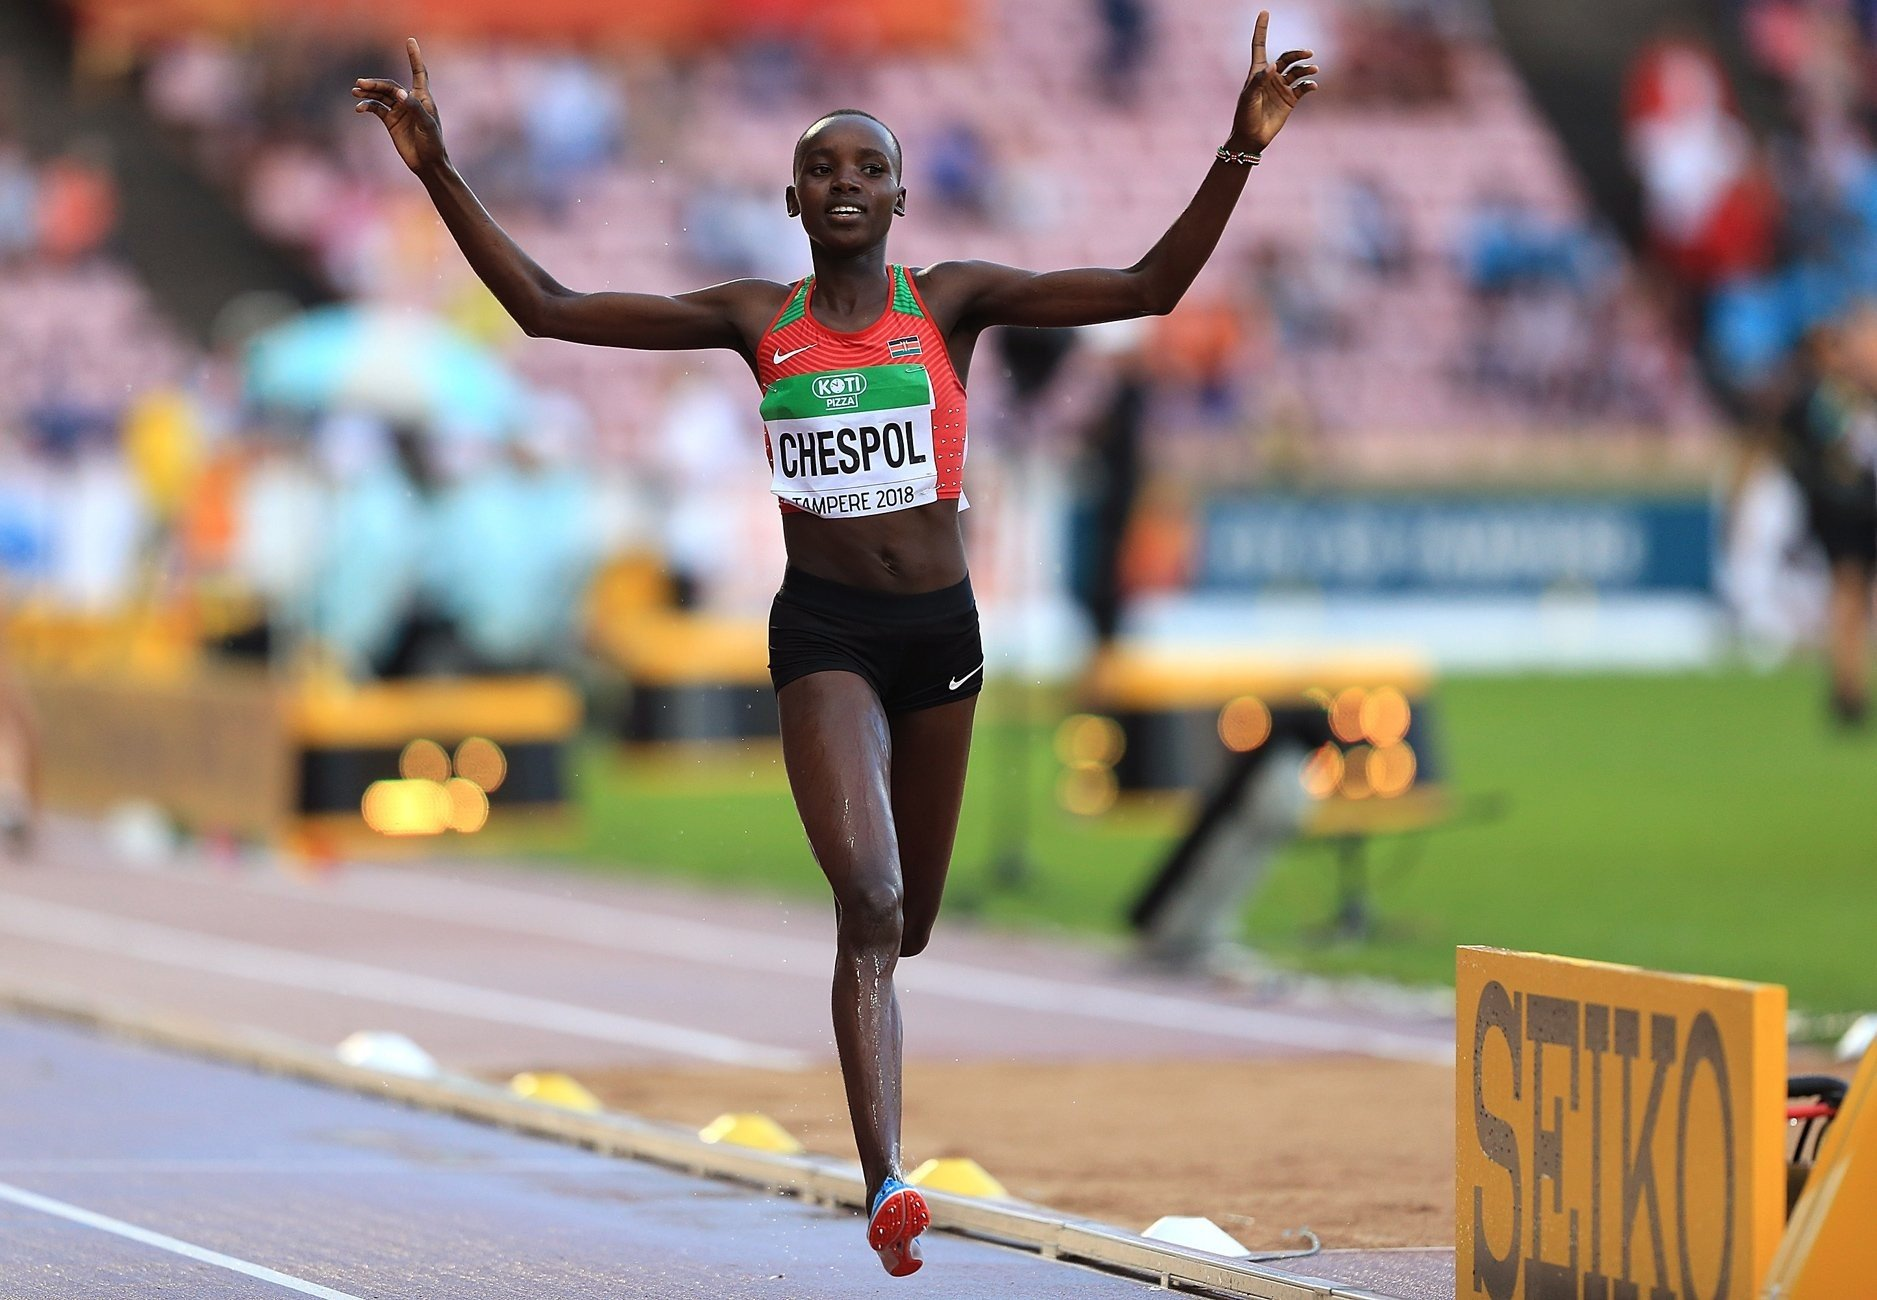 Kenyan Celiphine Chespol takes 3000m steeplechase gold at the IAAF World U20 Championships Tampere 2018 / Photo credit: Getty Images for IAAF